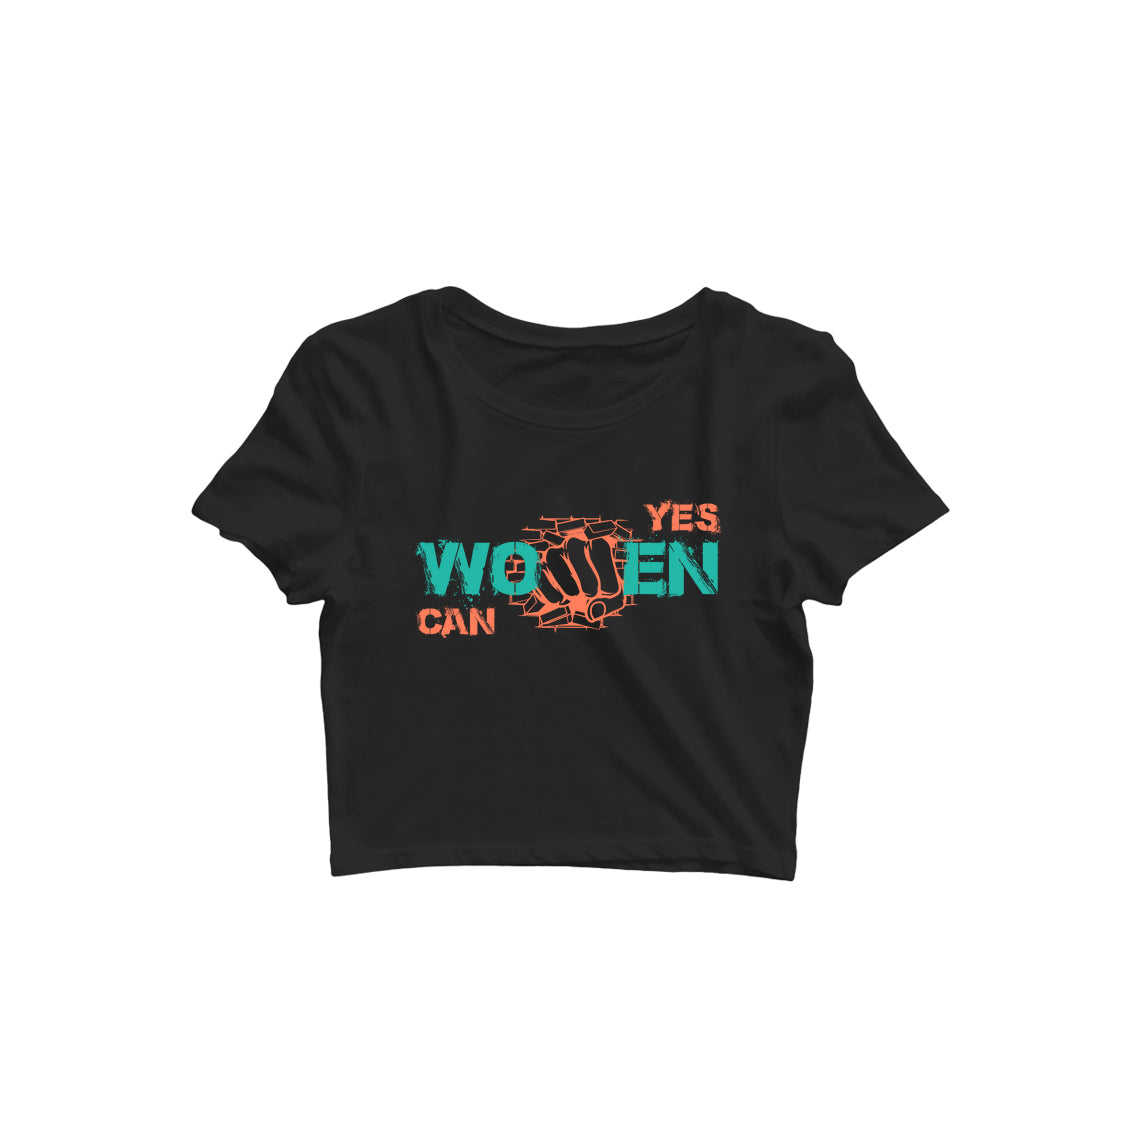 Yes Women Can - Almytees